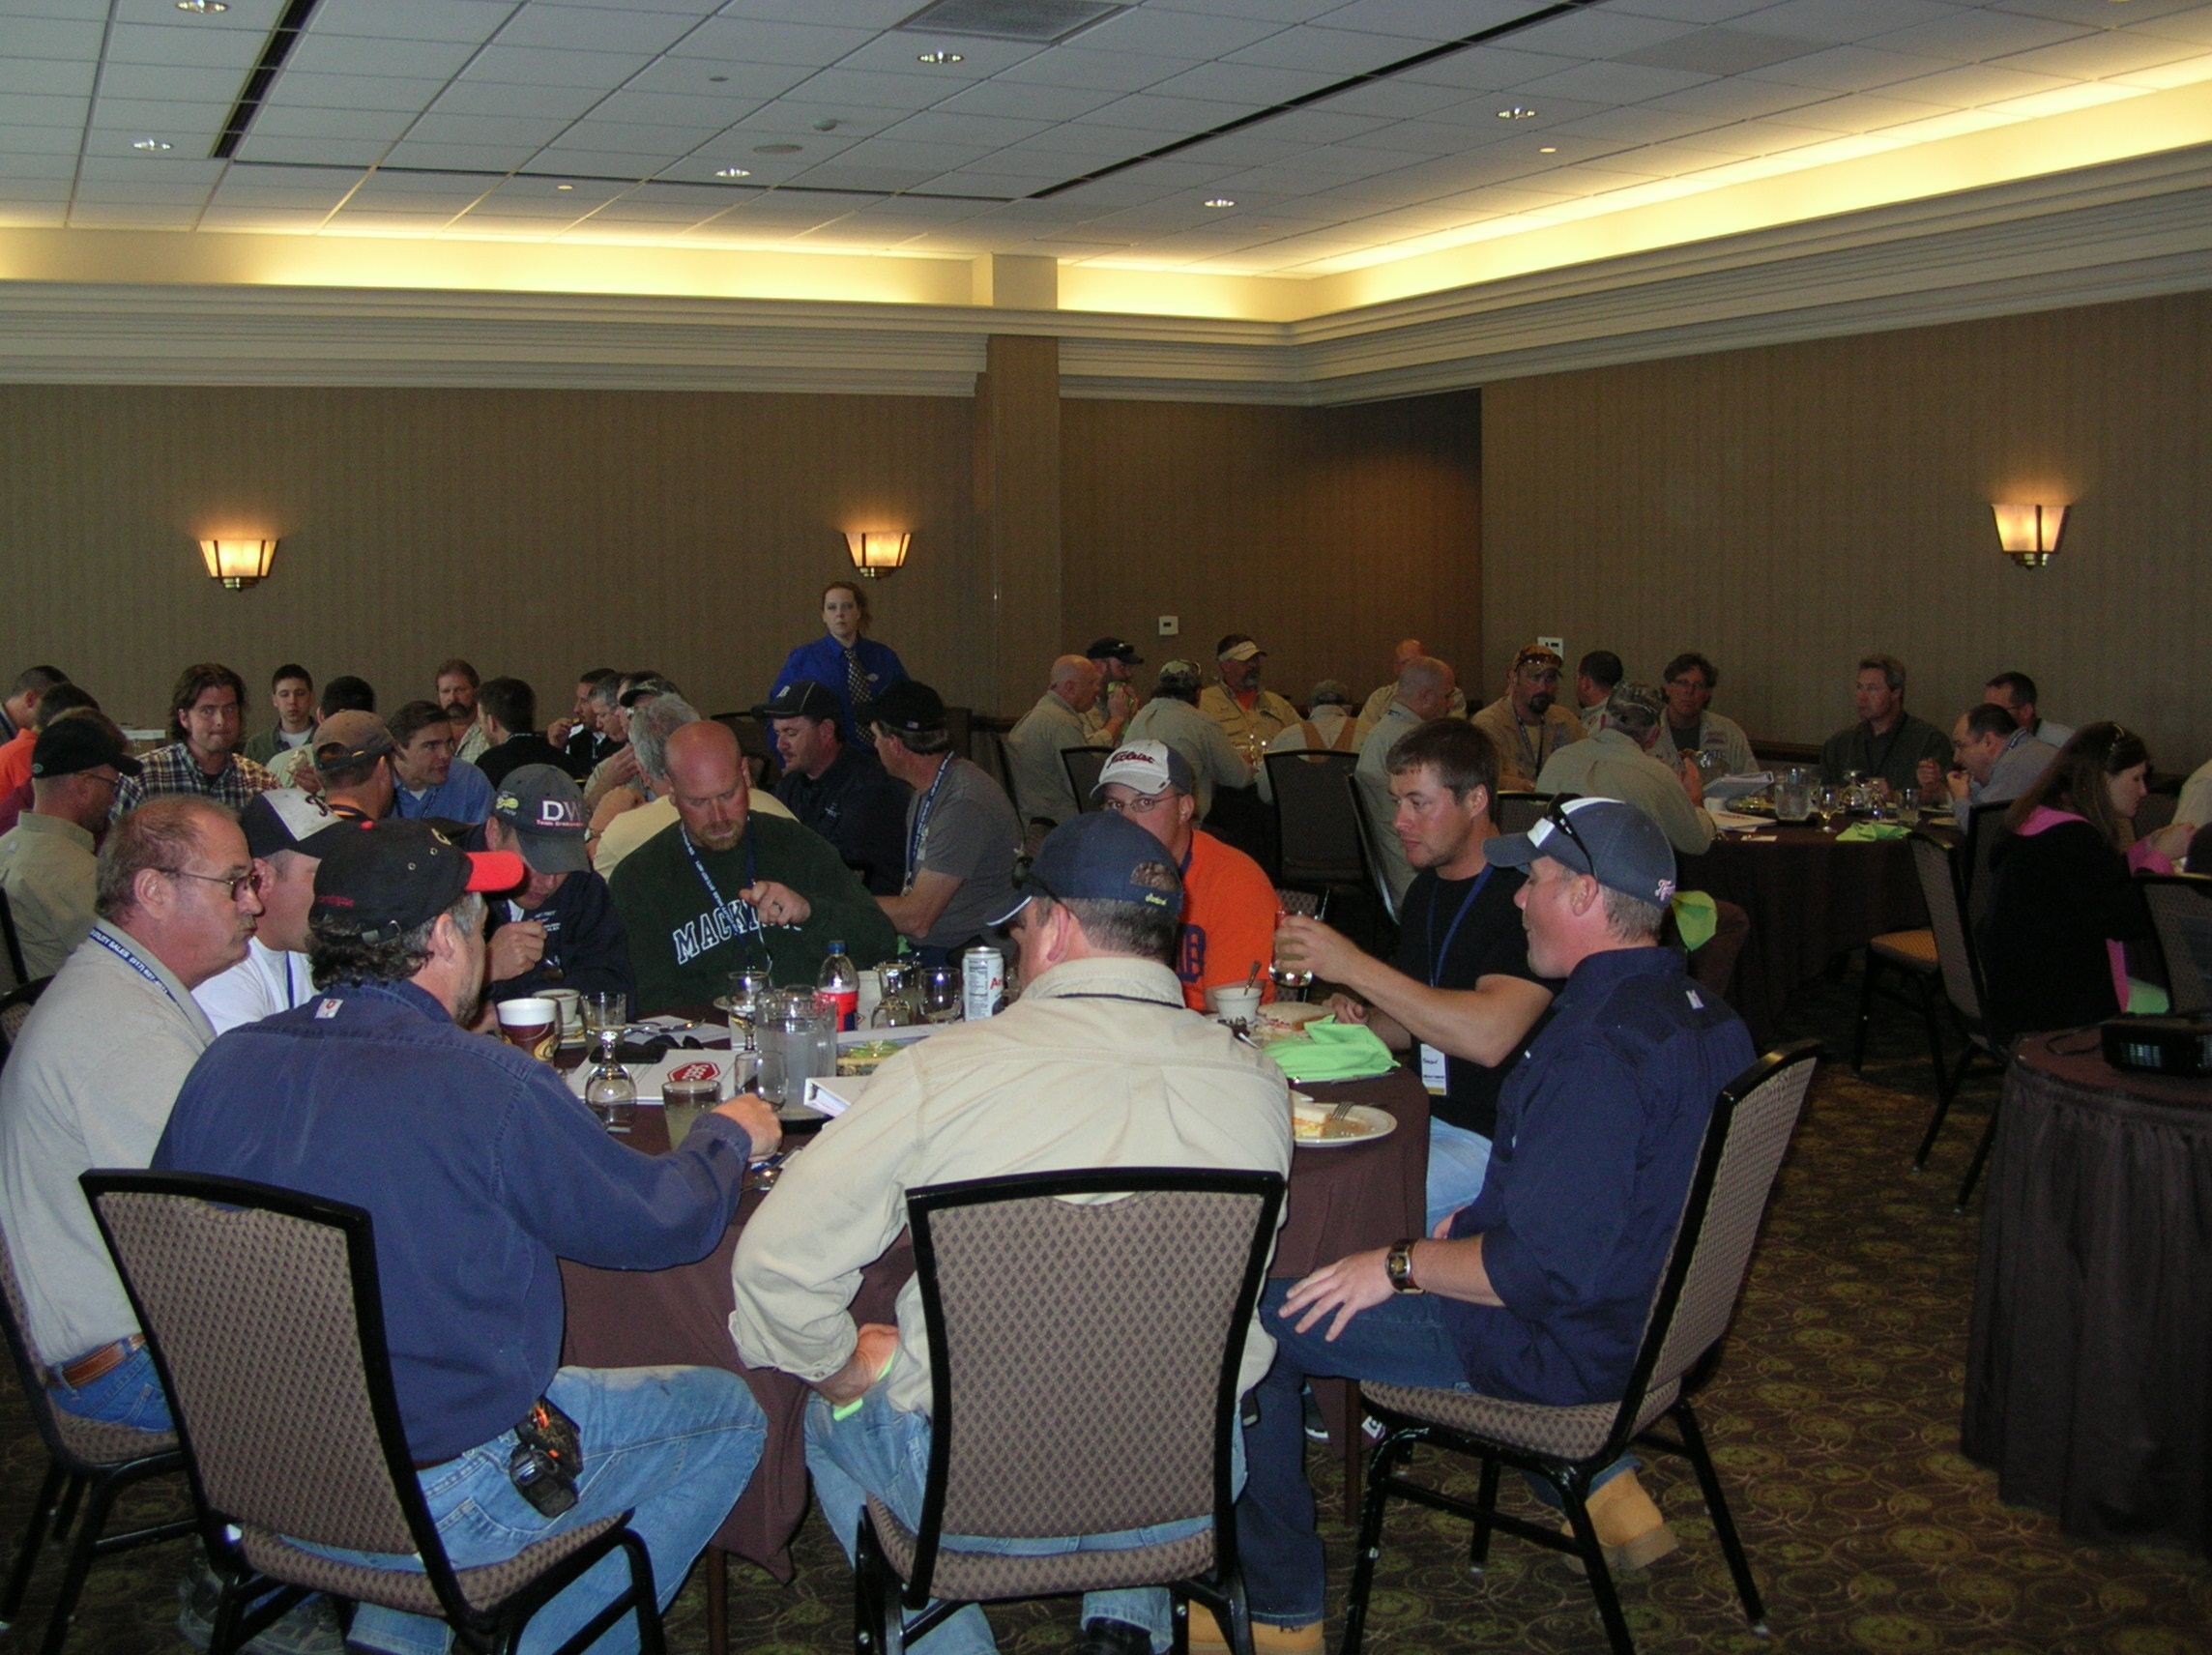 SEECO Seminar Draws People From All Over Michigan